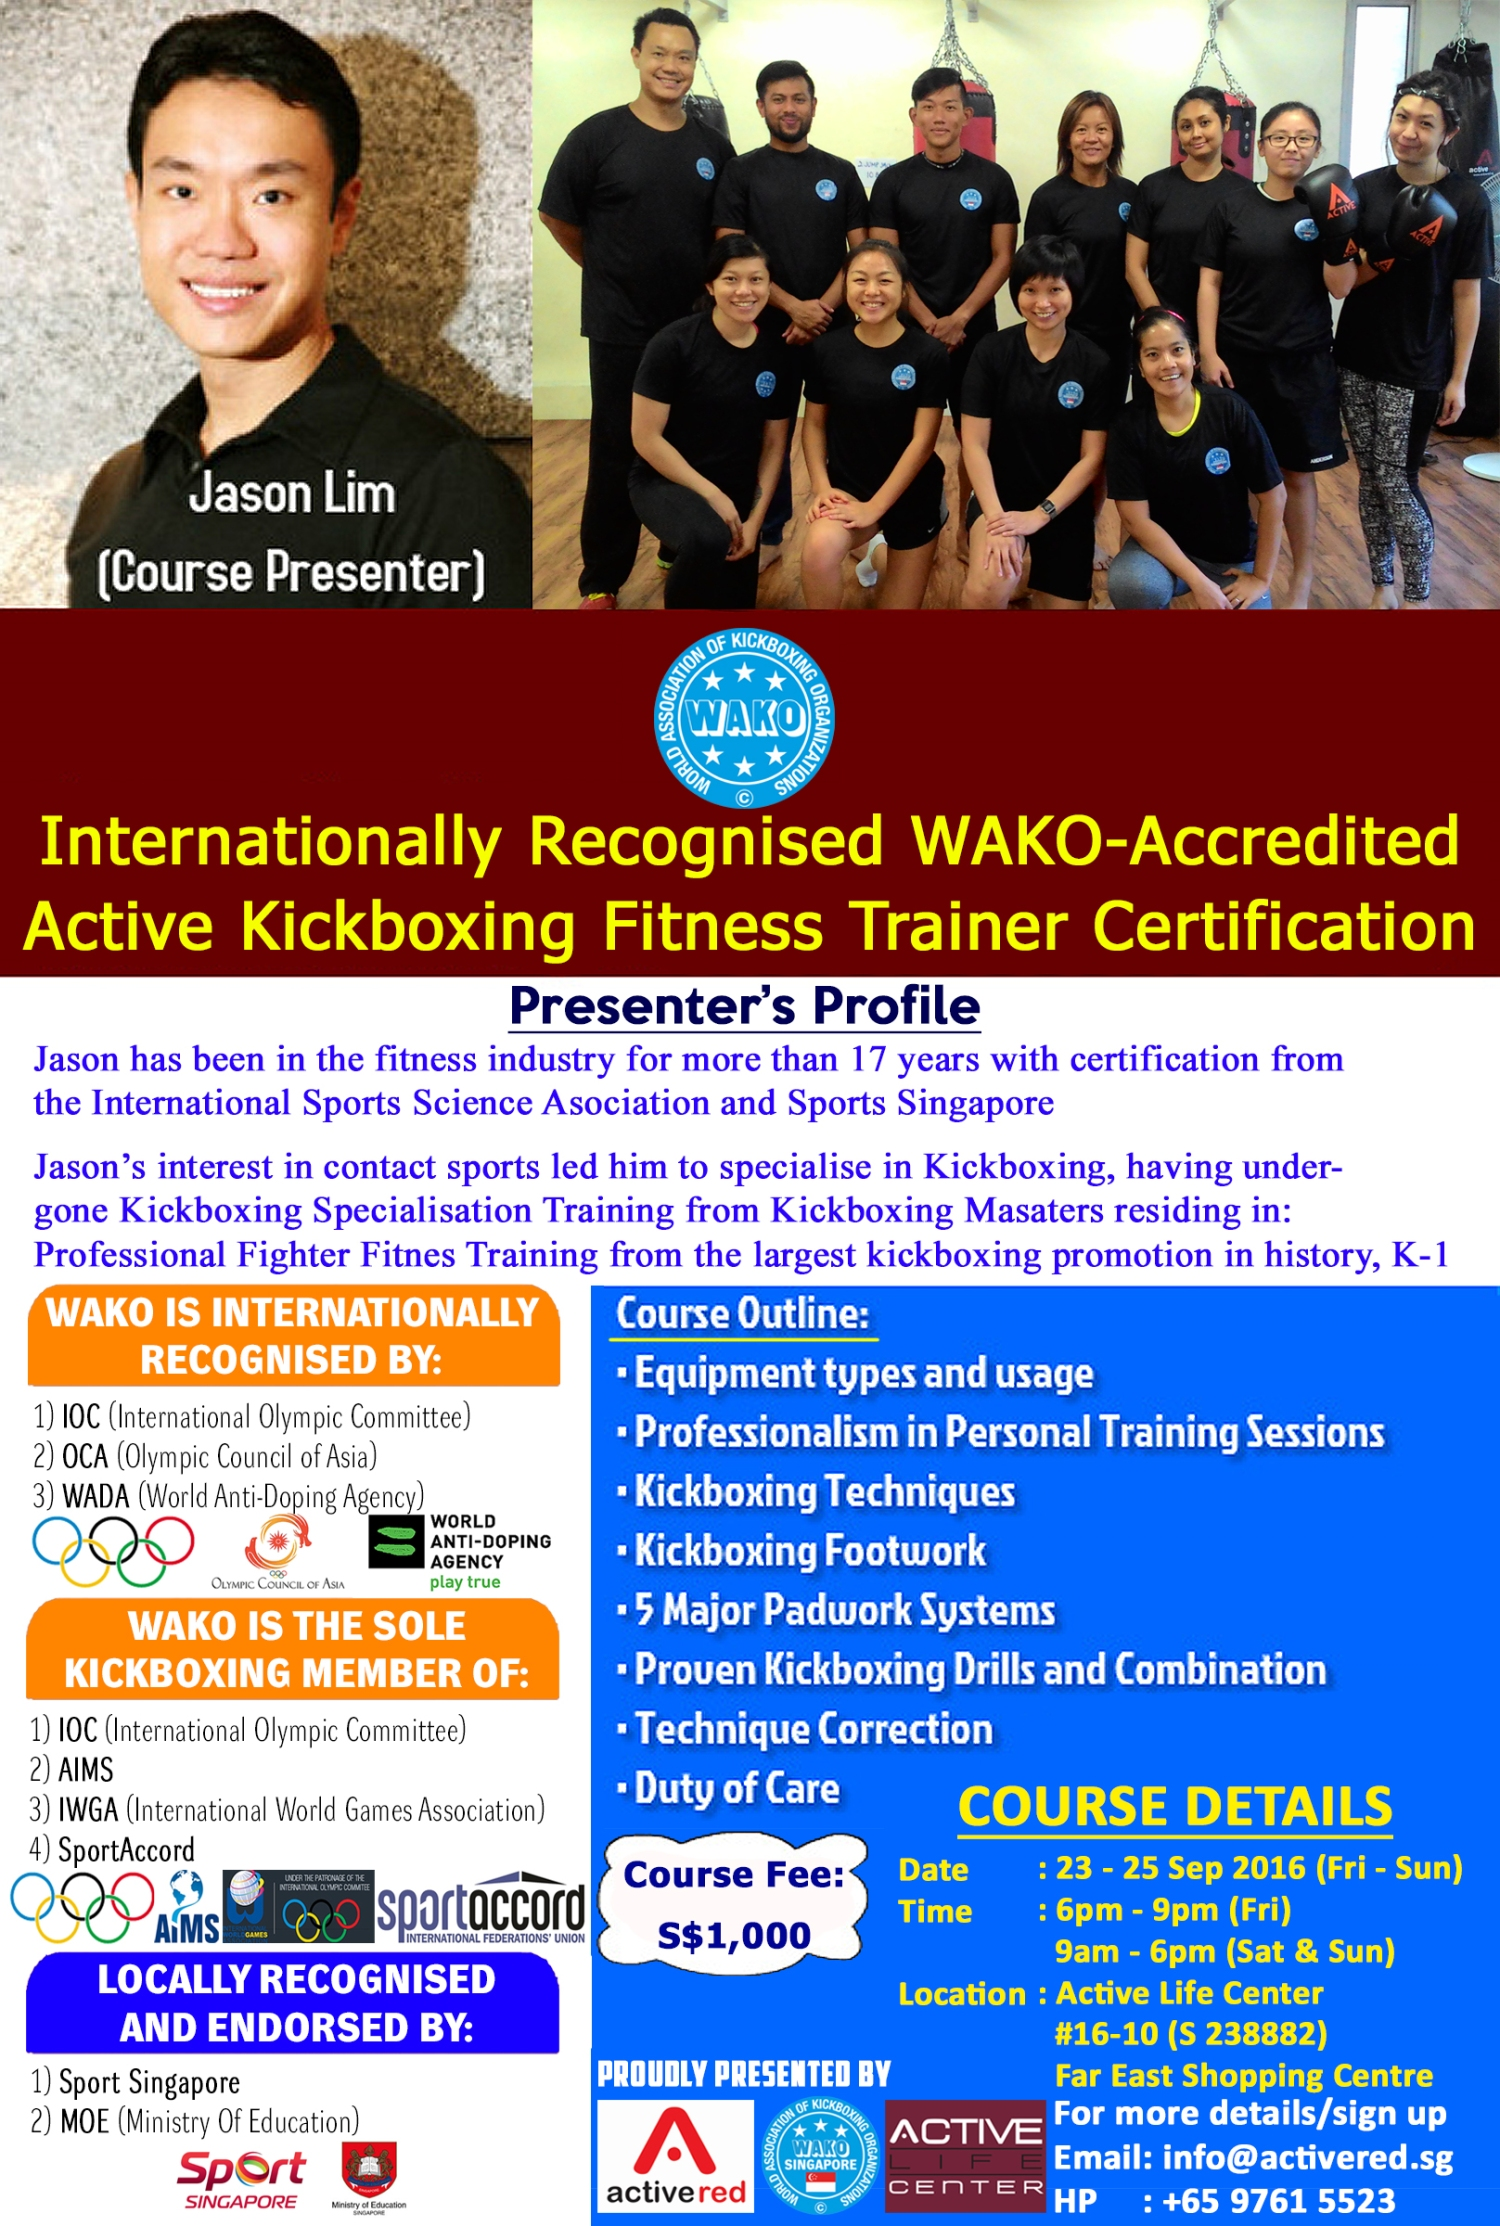 WAKO Poster (23 - 25 Sep 2016) copy.JPG